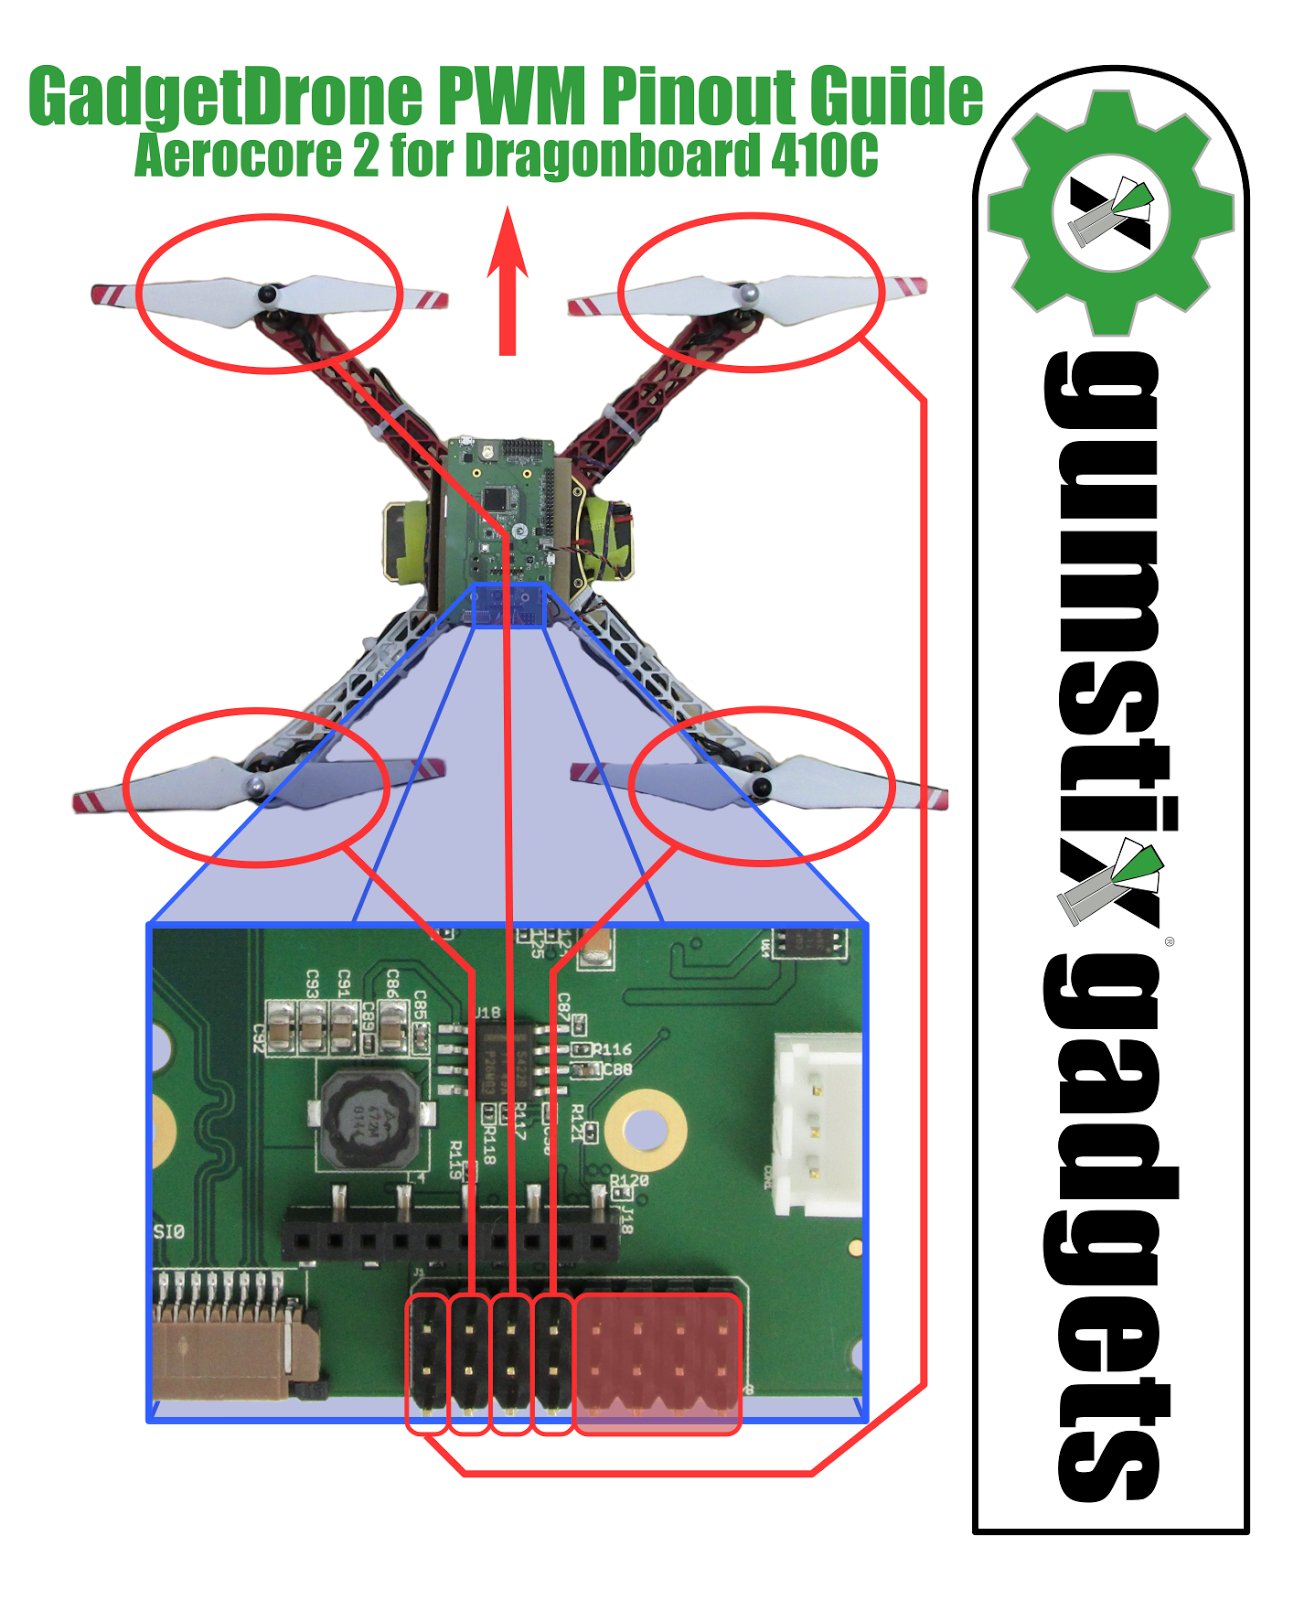 Step By For Dji Flame Wheel Self Piloting Dragonboard 410c Or Intro To Parallel Circuits Youtube Ac24db Pwm